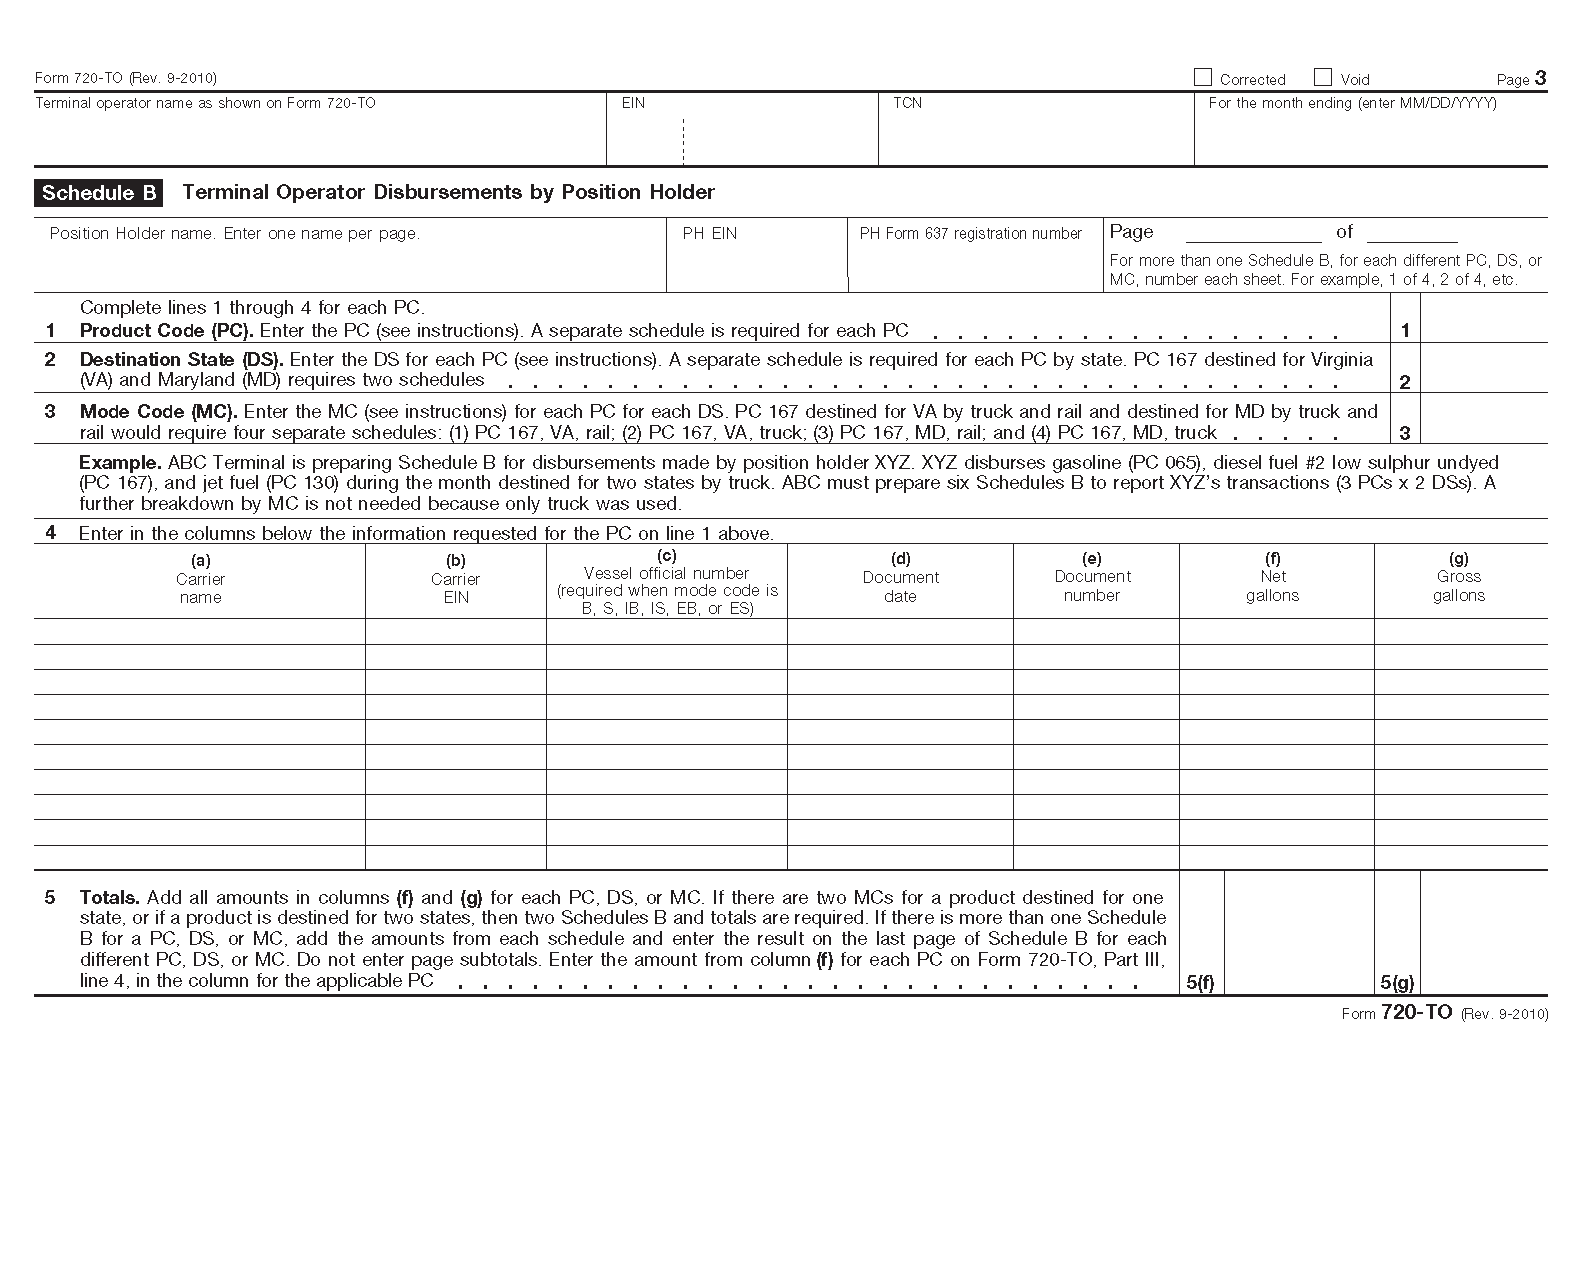 Form 720 to terminal operator report view all 2011 irs tax forms falaconquin